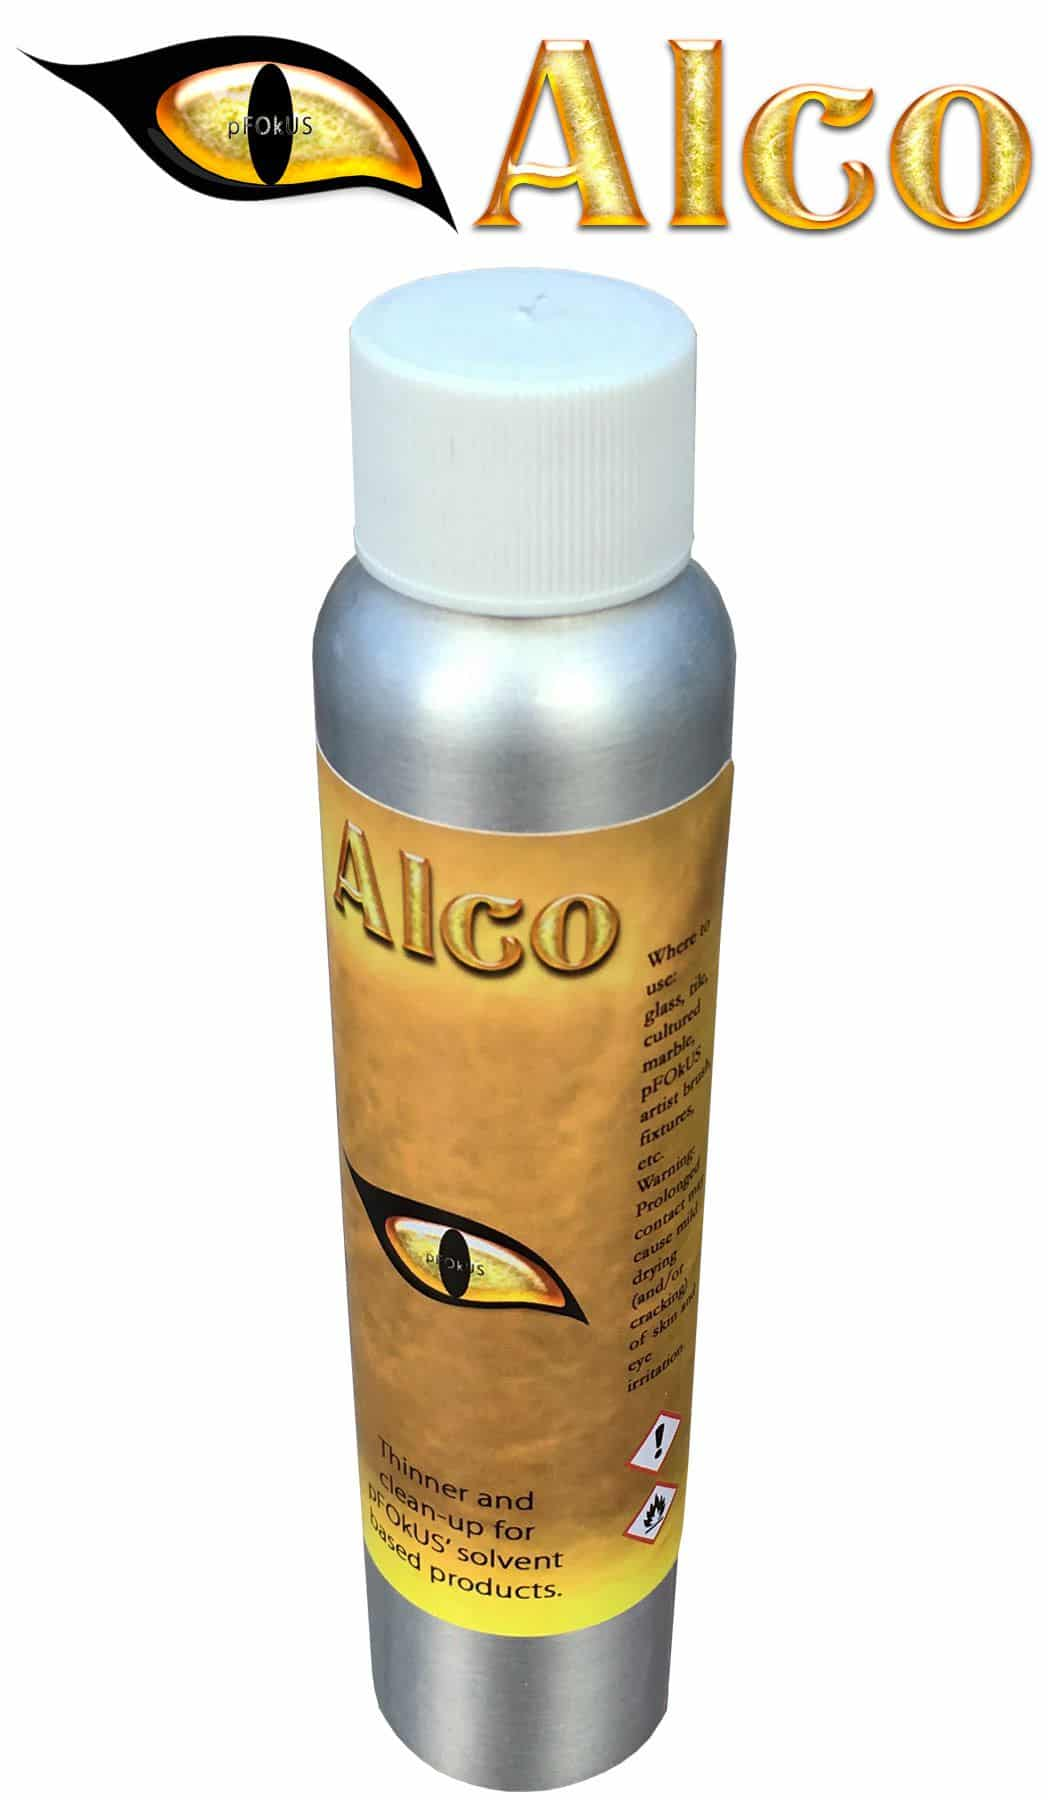 Alco - A Natural Alcohol based Paint Thinner and Reducer